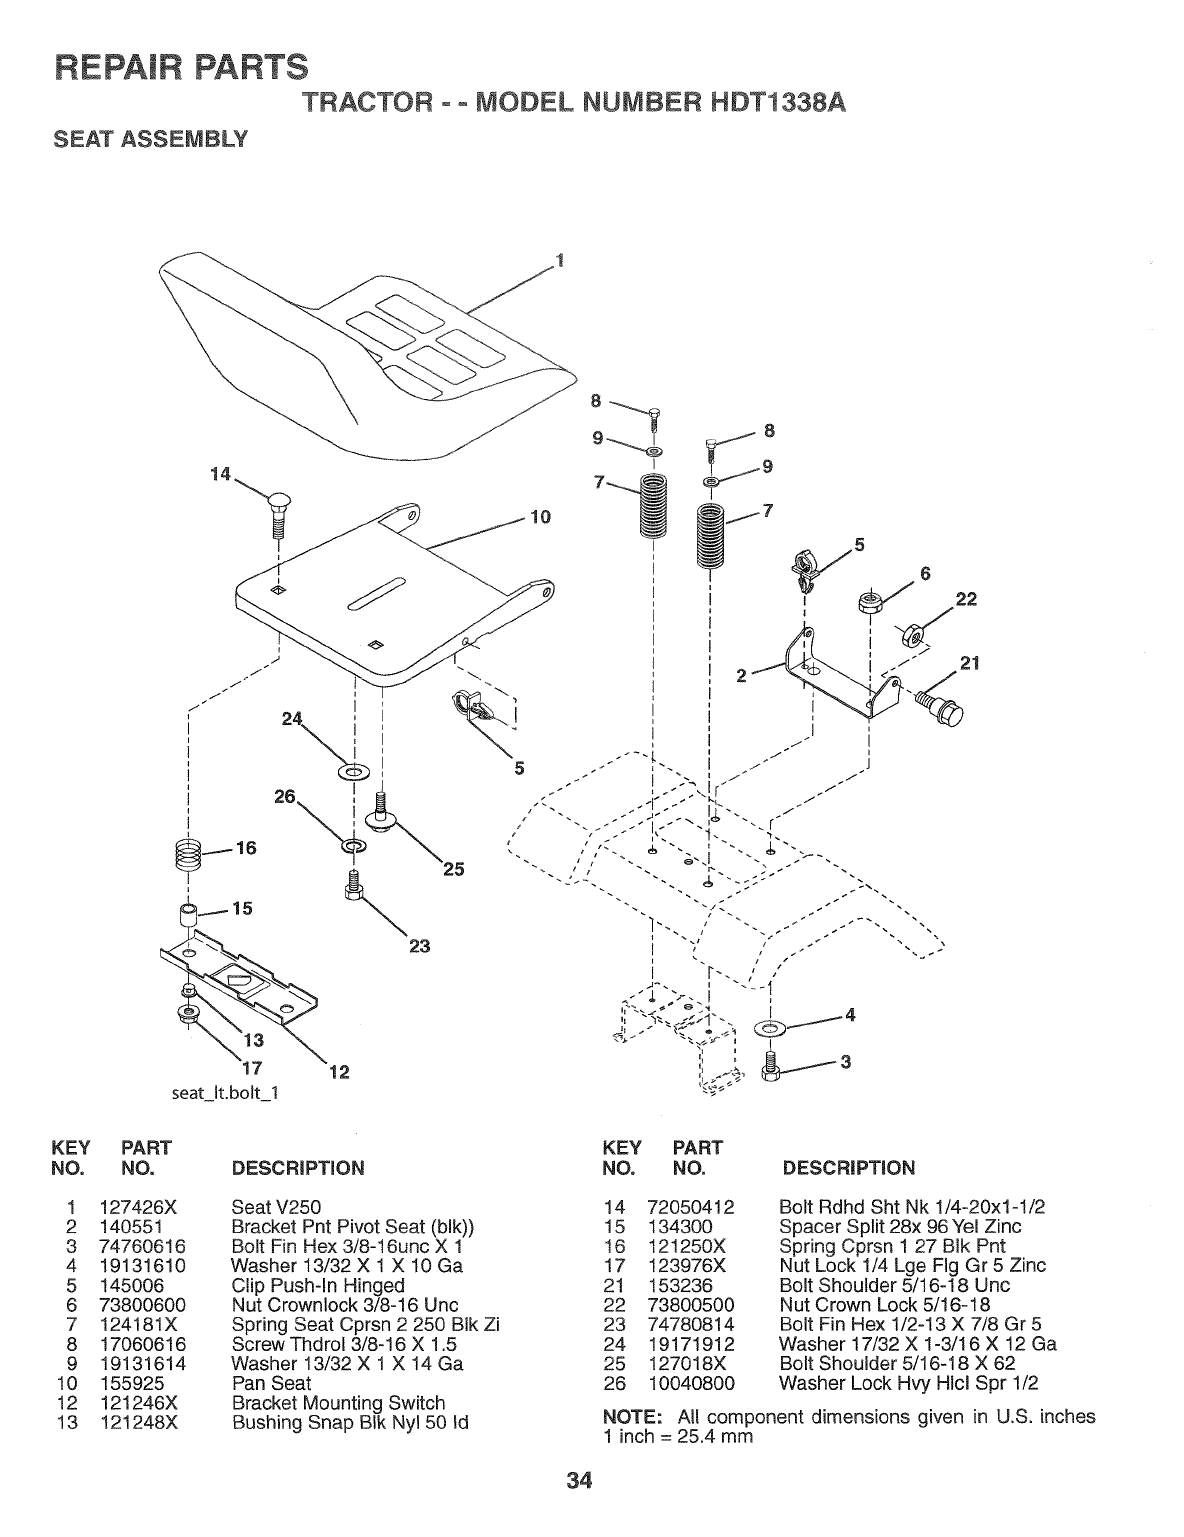 Page 34 of Weed Eater Lawn Mower HDT1338A User Guide